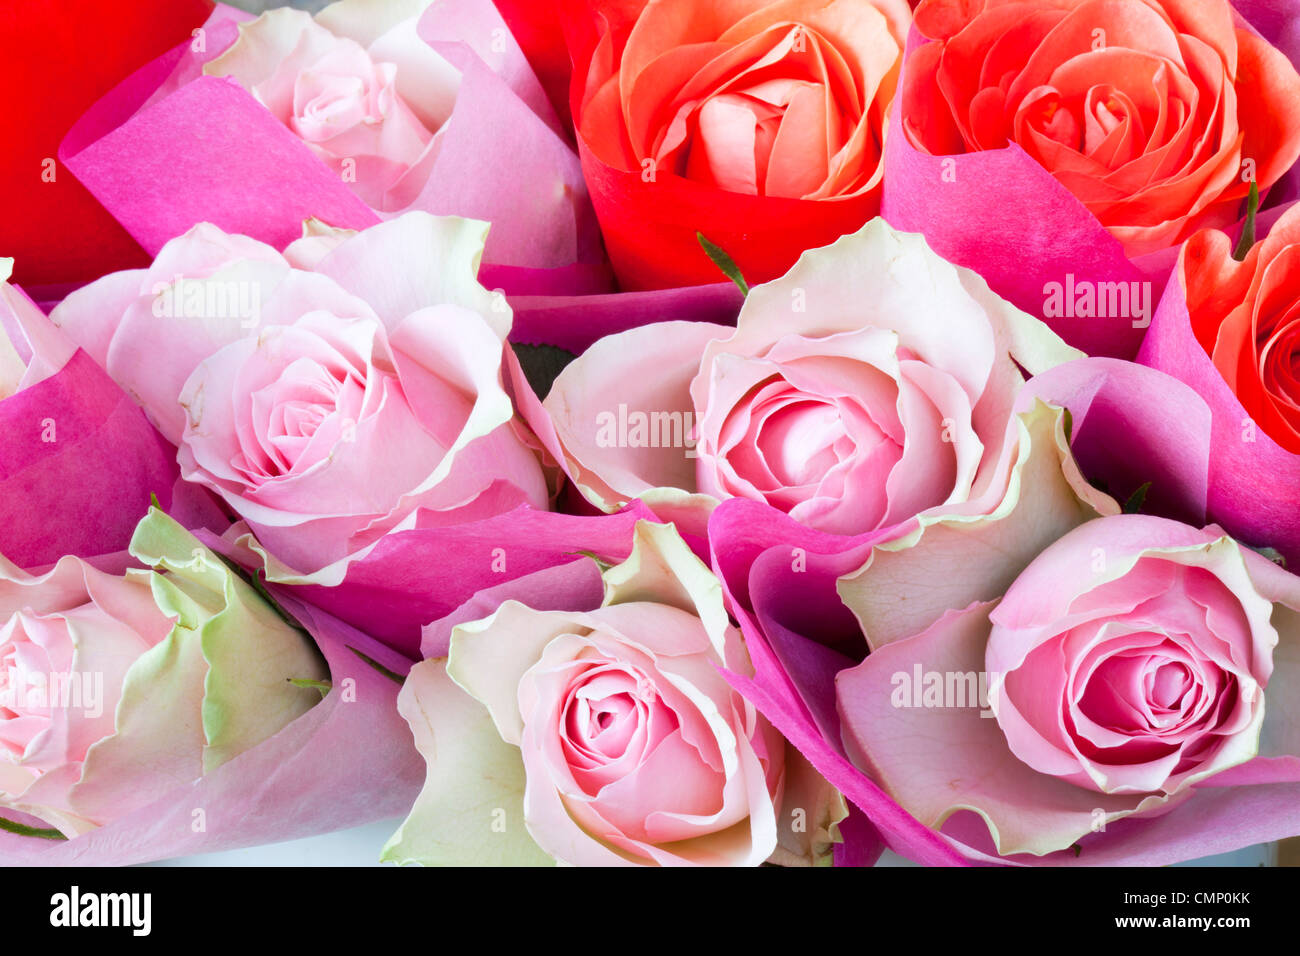 Pink Roses Wrapped In Tissue Paper Stock Photo 47197351 Alamy